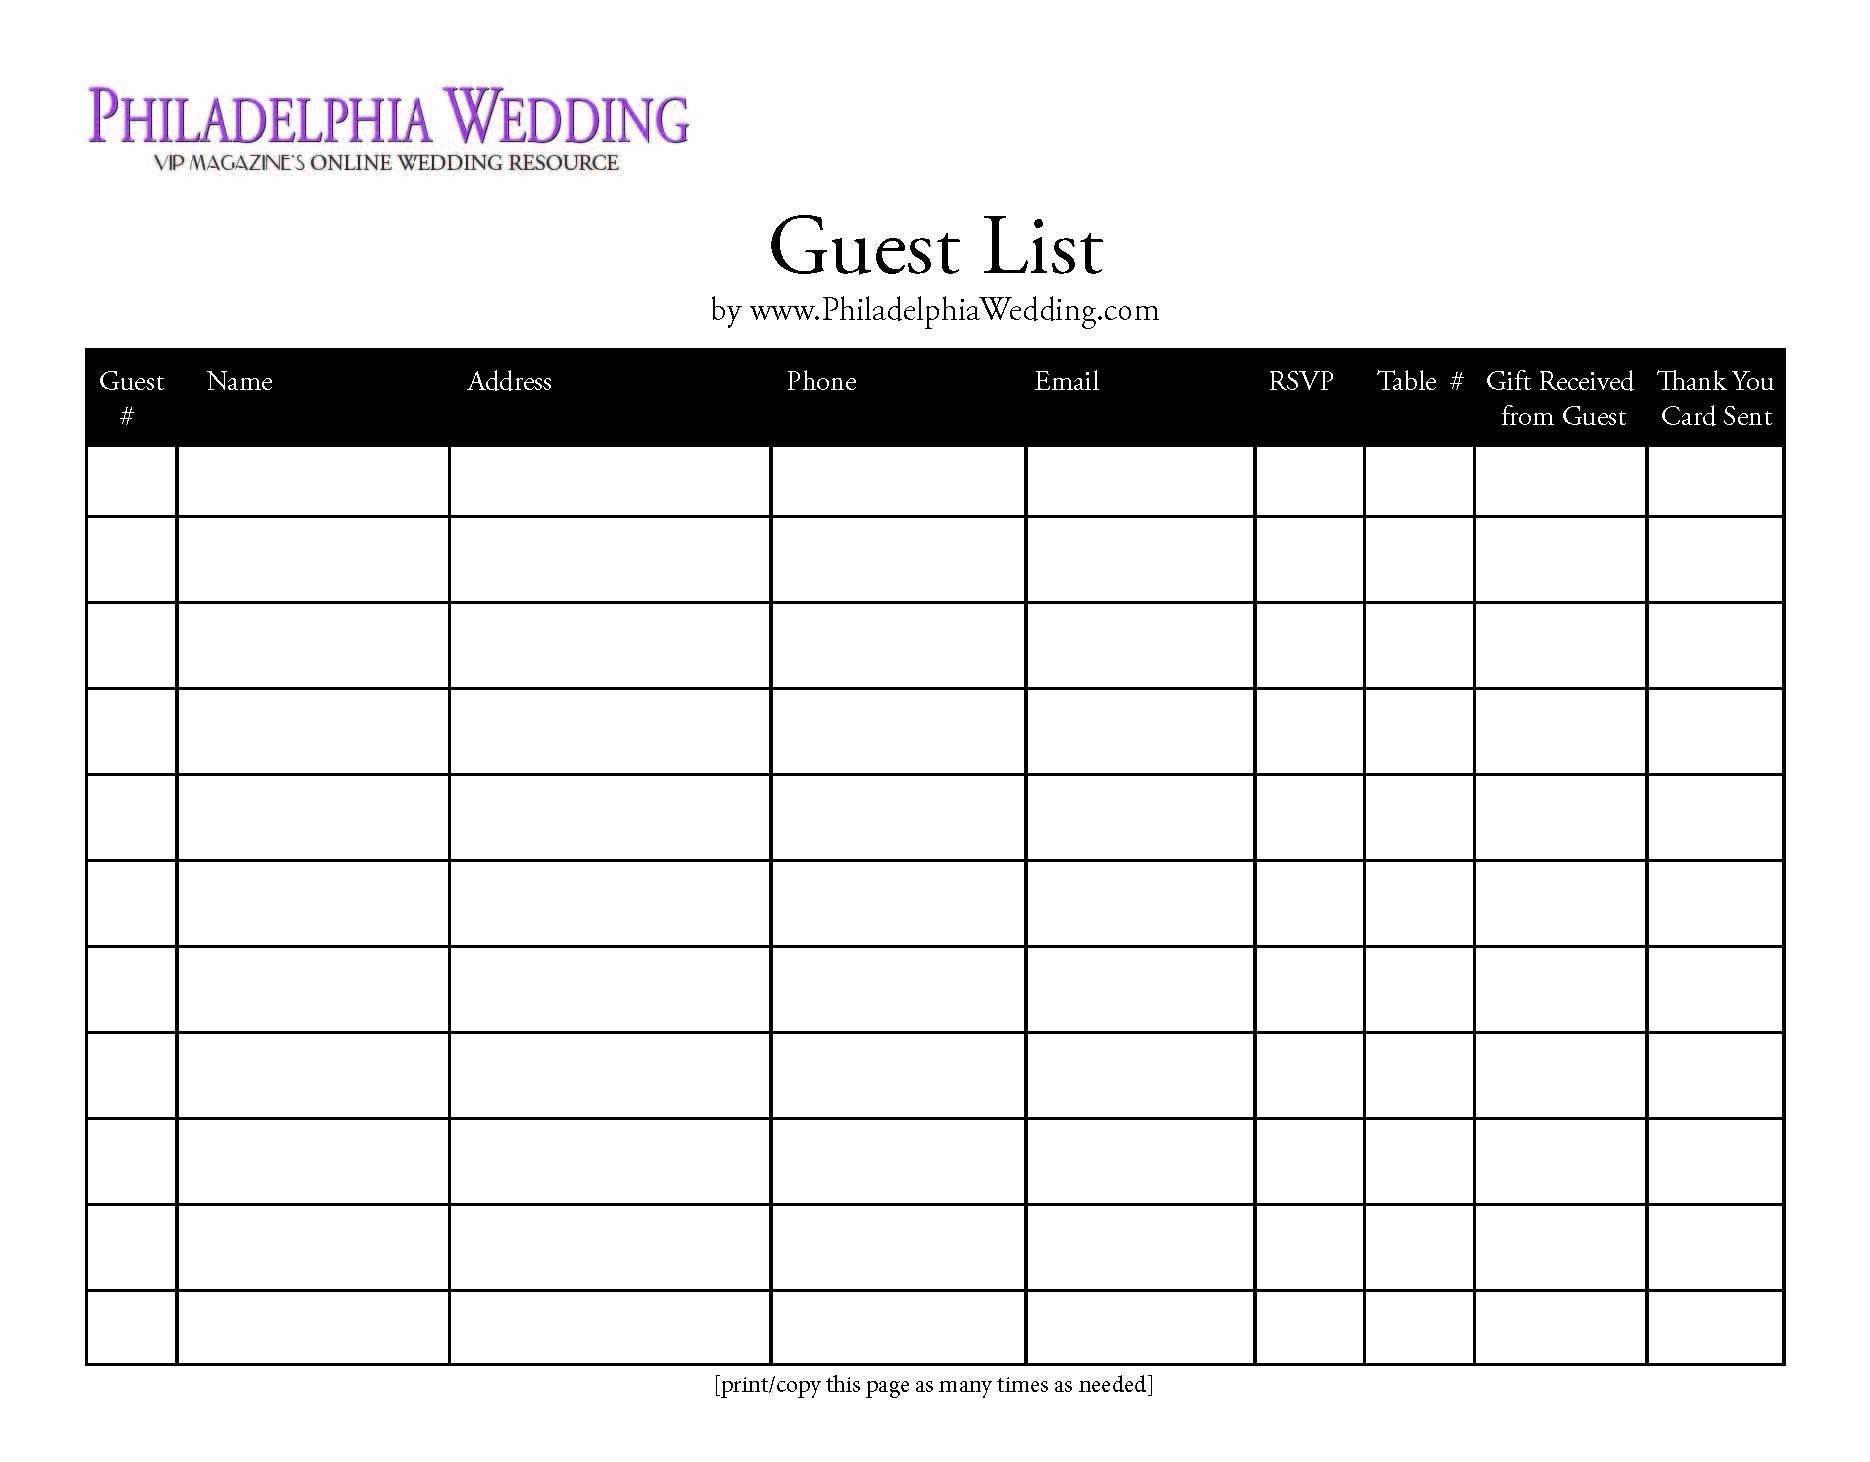 002 Frightening Rsvp Guest List Template Excel High Resolution Full